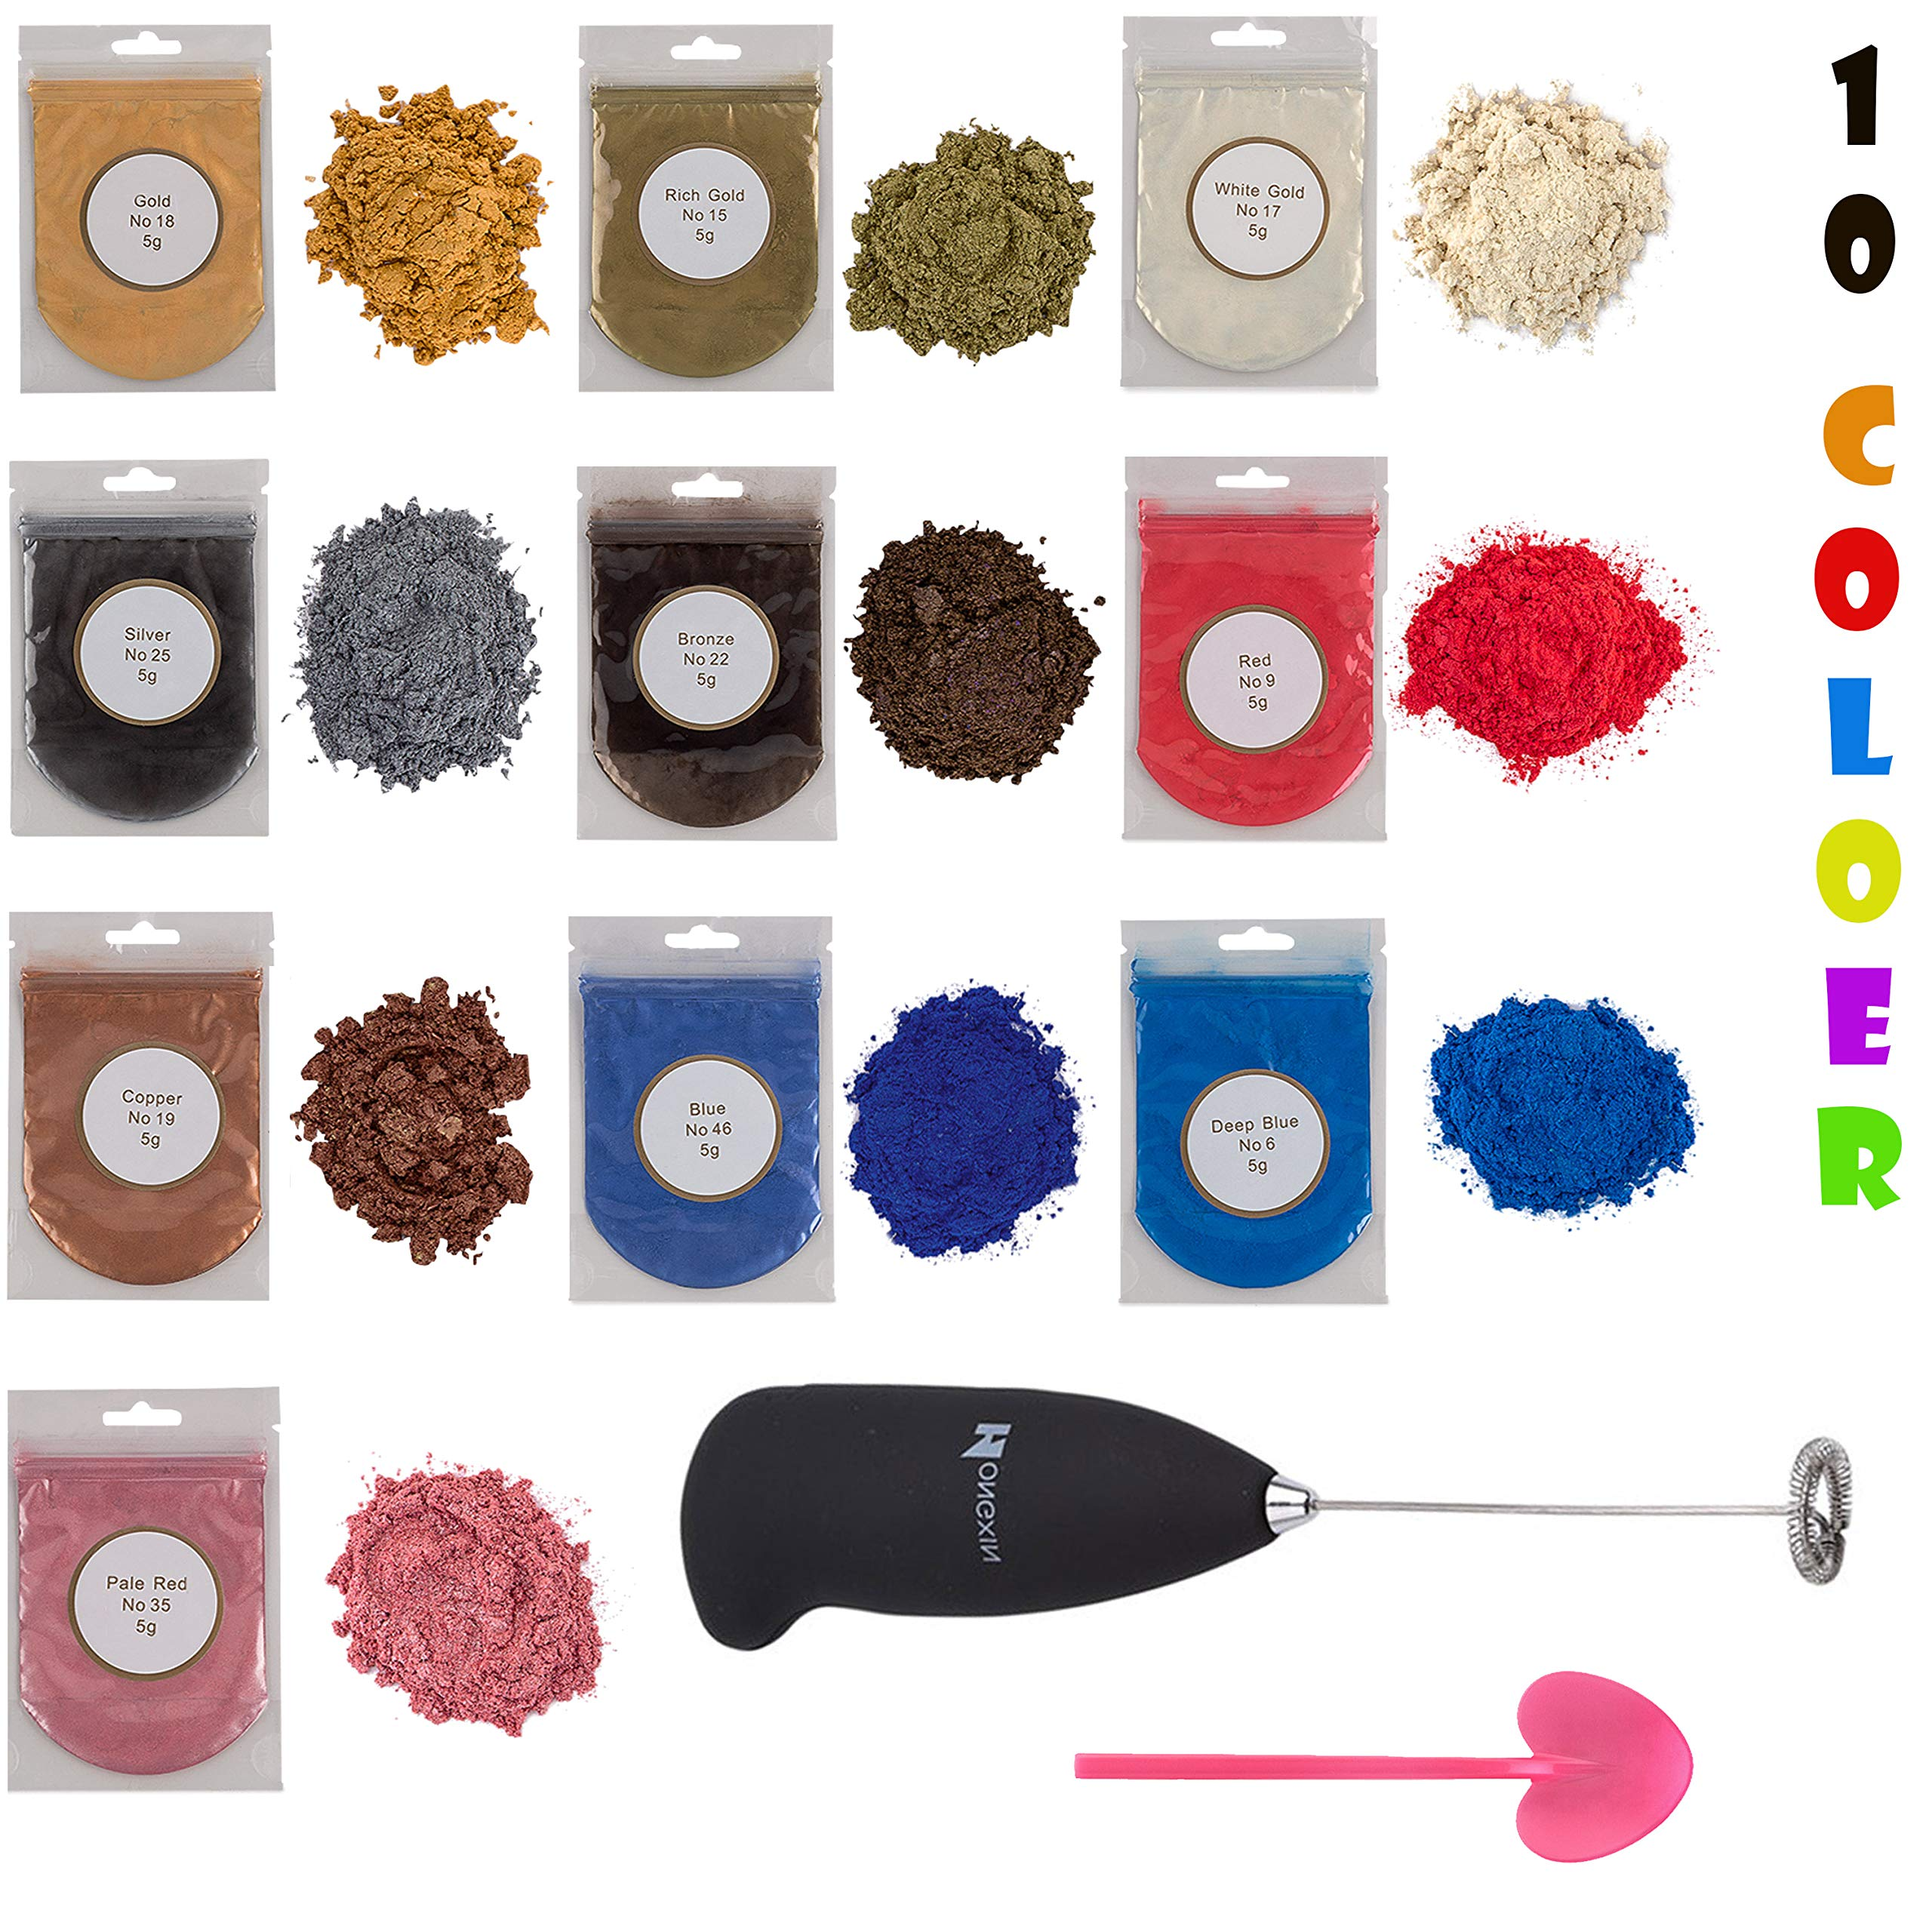 Metallic epoxy Resin Color Pigment 10 Colors Gold, Silver, Blue and Red Collections Metallic Mica Powders with Mixing Supplies Resin kit by L5 color